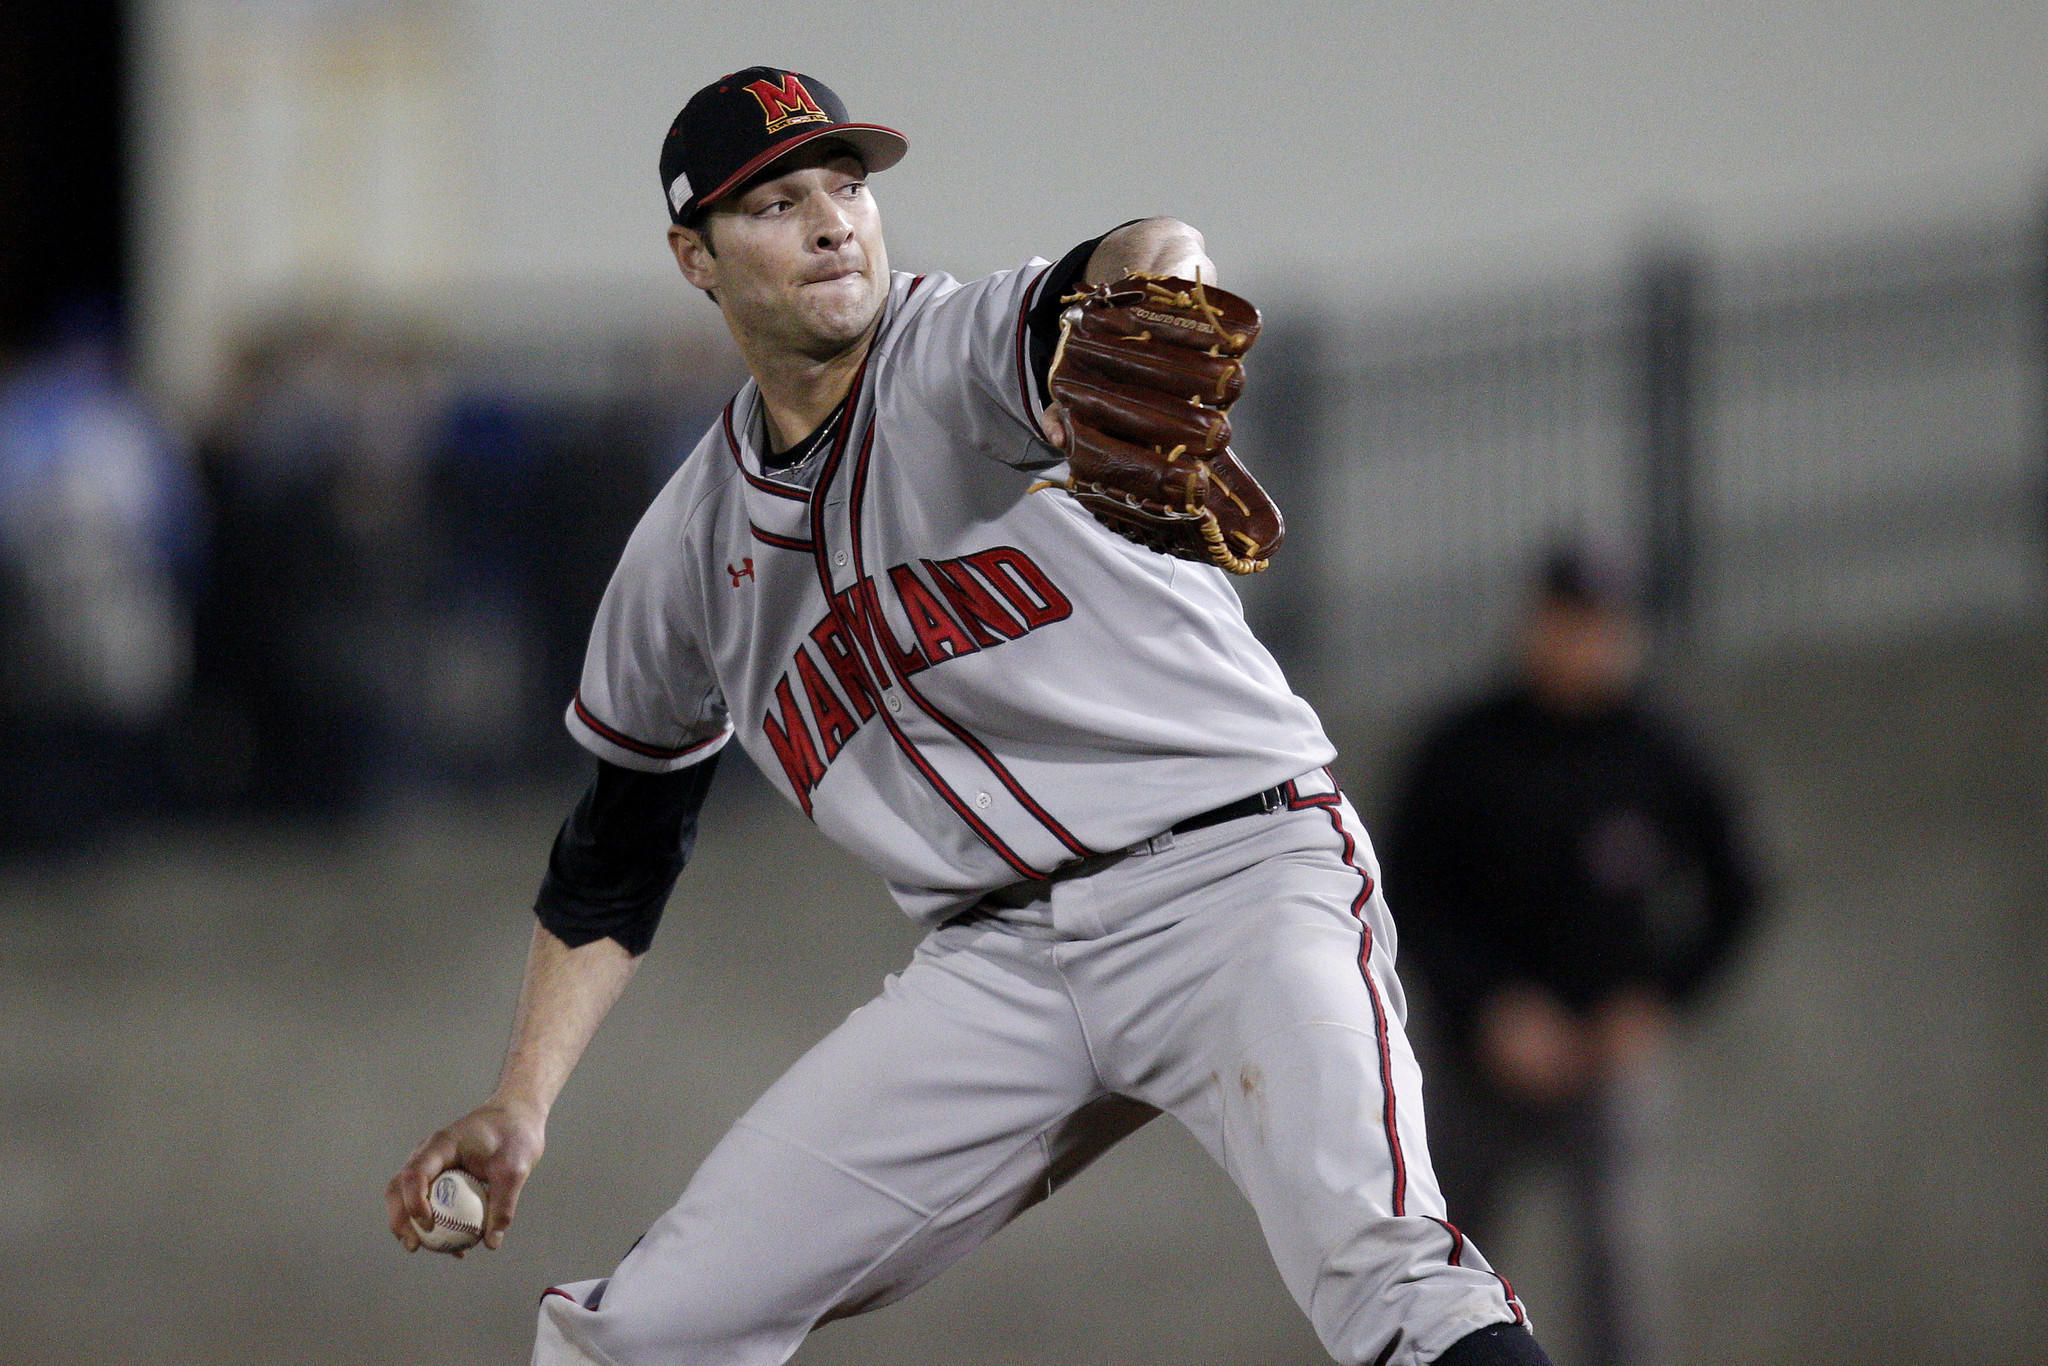 Terps pitcher Jake Stinnett tossed a no-hitter against Massachusetts on March 1 and struck out 14 batters in a win over N.C. State later that month.